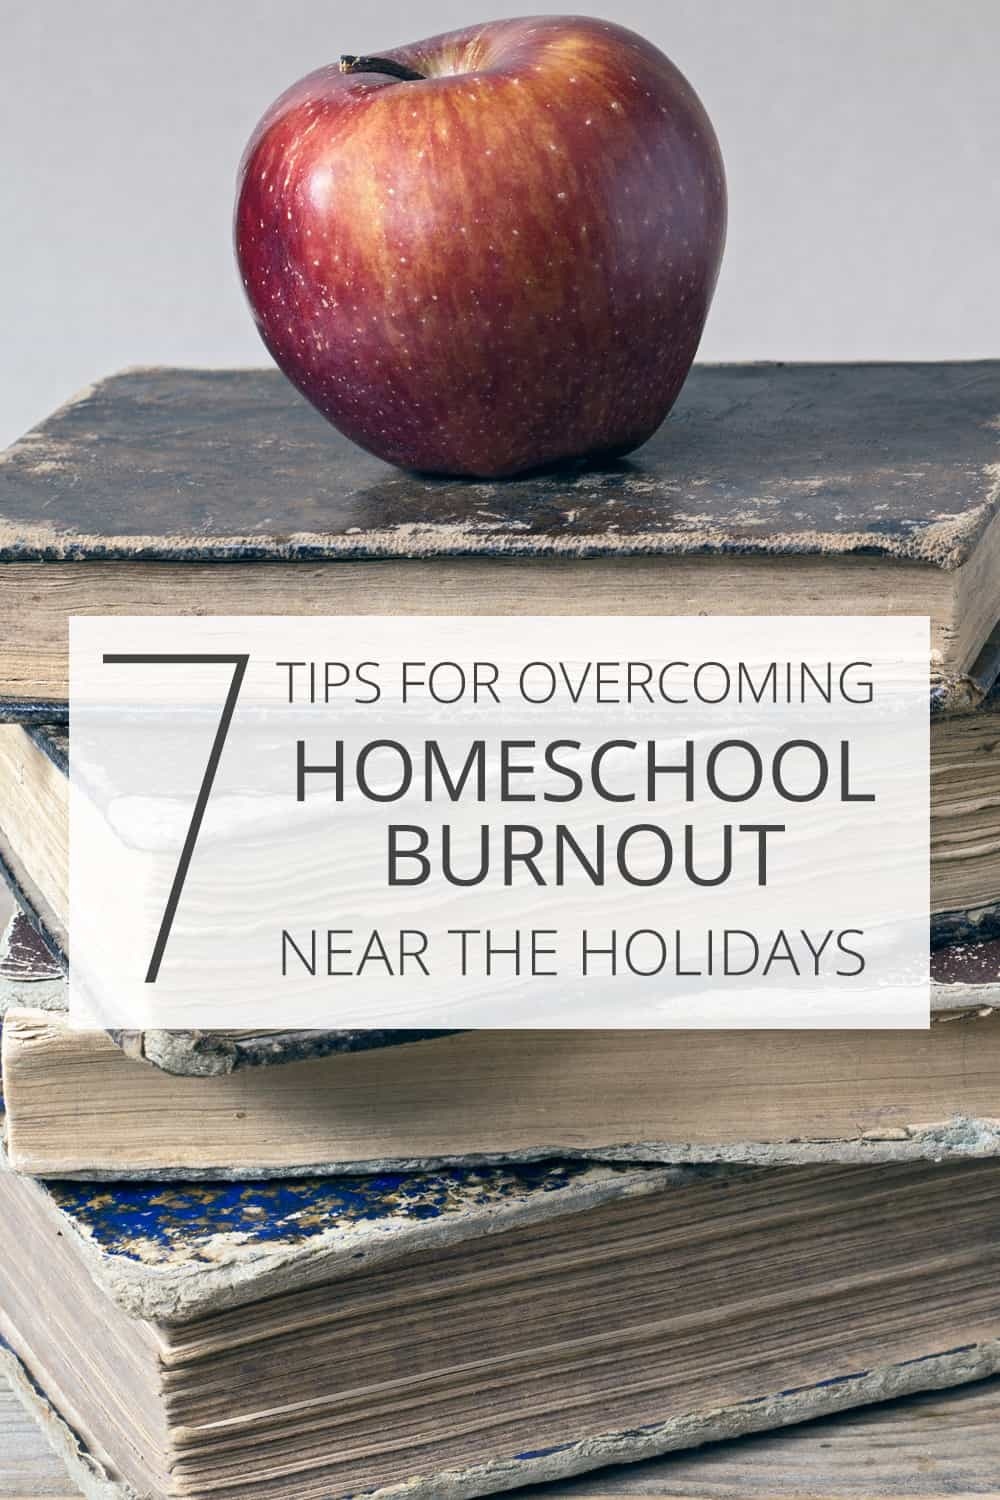 7 tips for overcoming homeschool burnout near the holidays